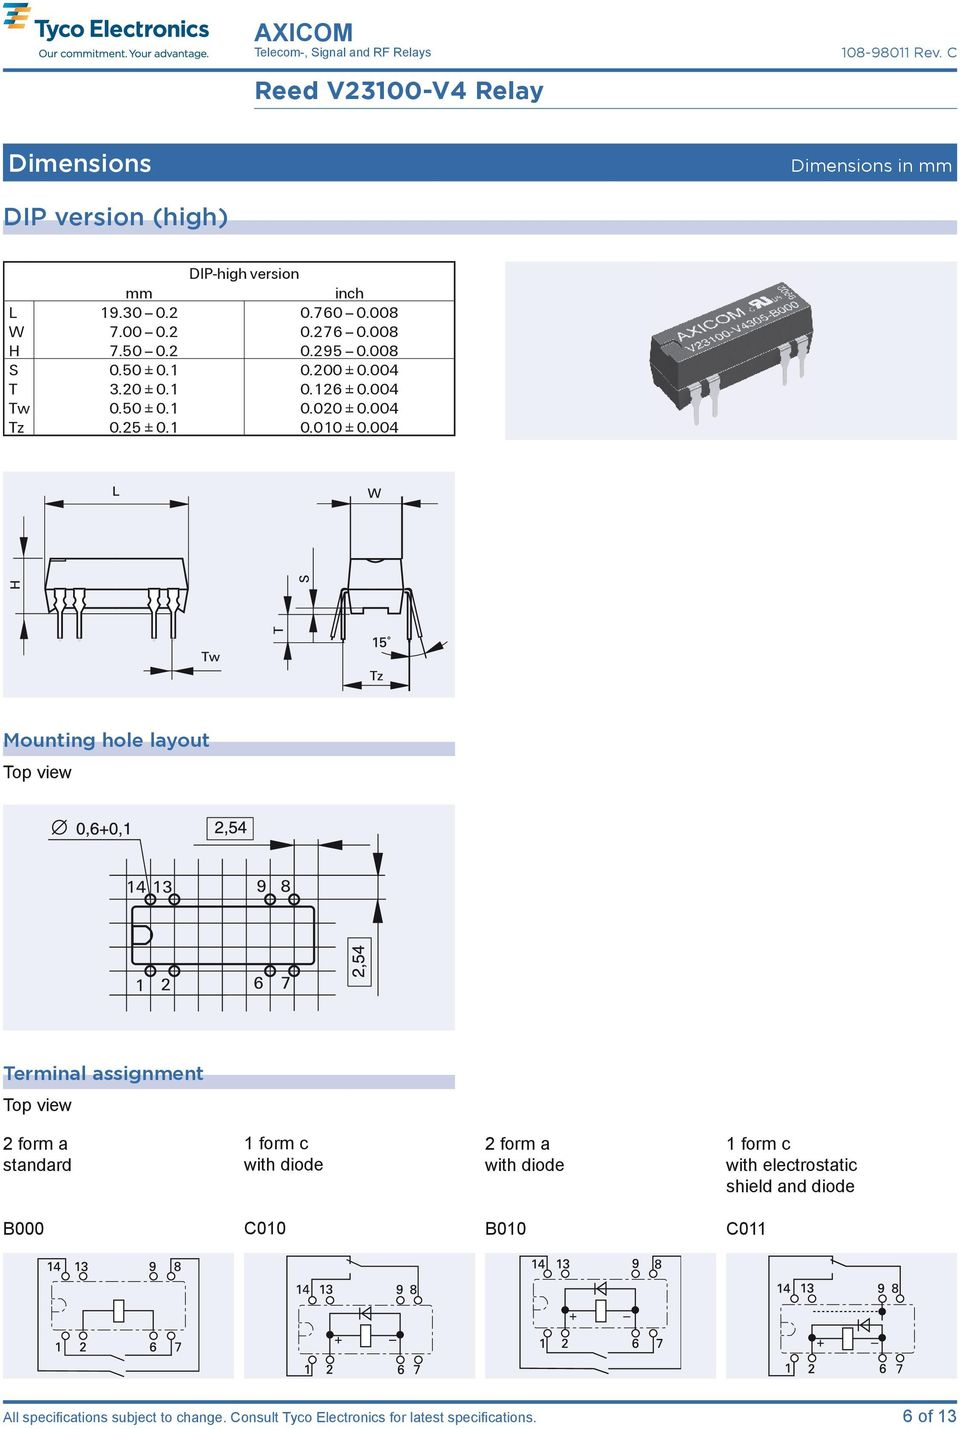 004 Mounting hole layout Terminal assignment 2 form a standard 1 form c with diode 2 form a with diode 1 form c with